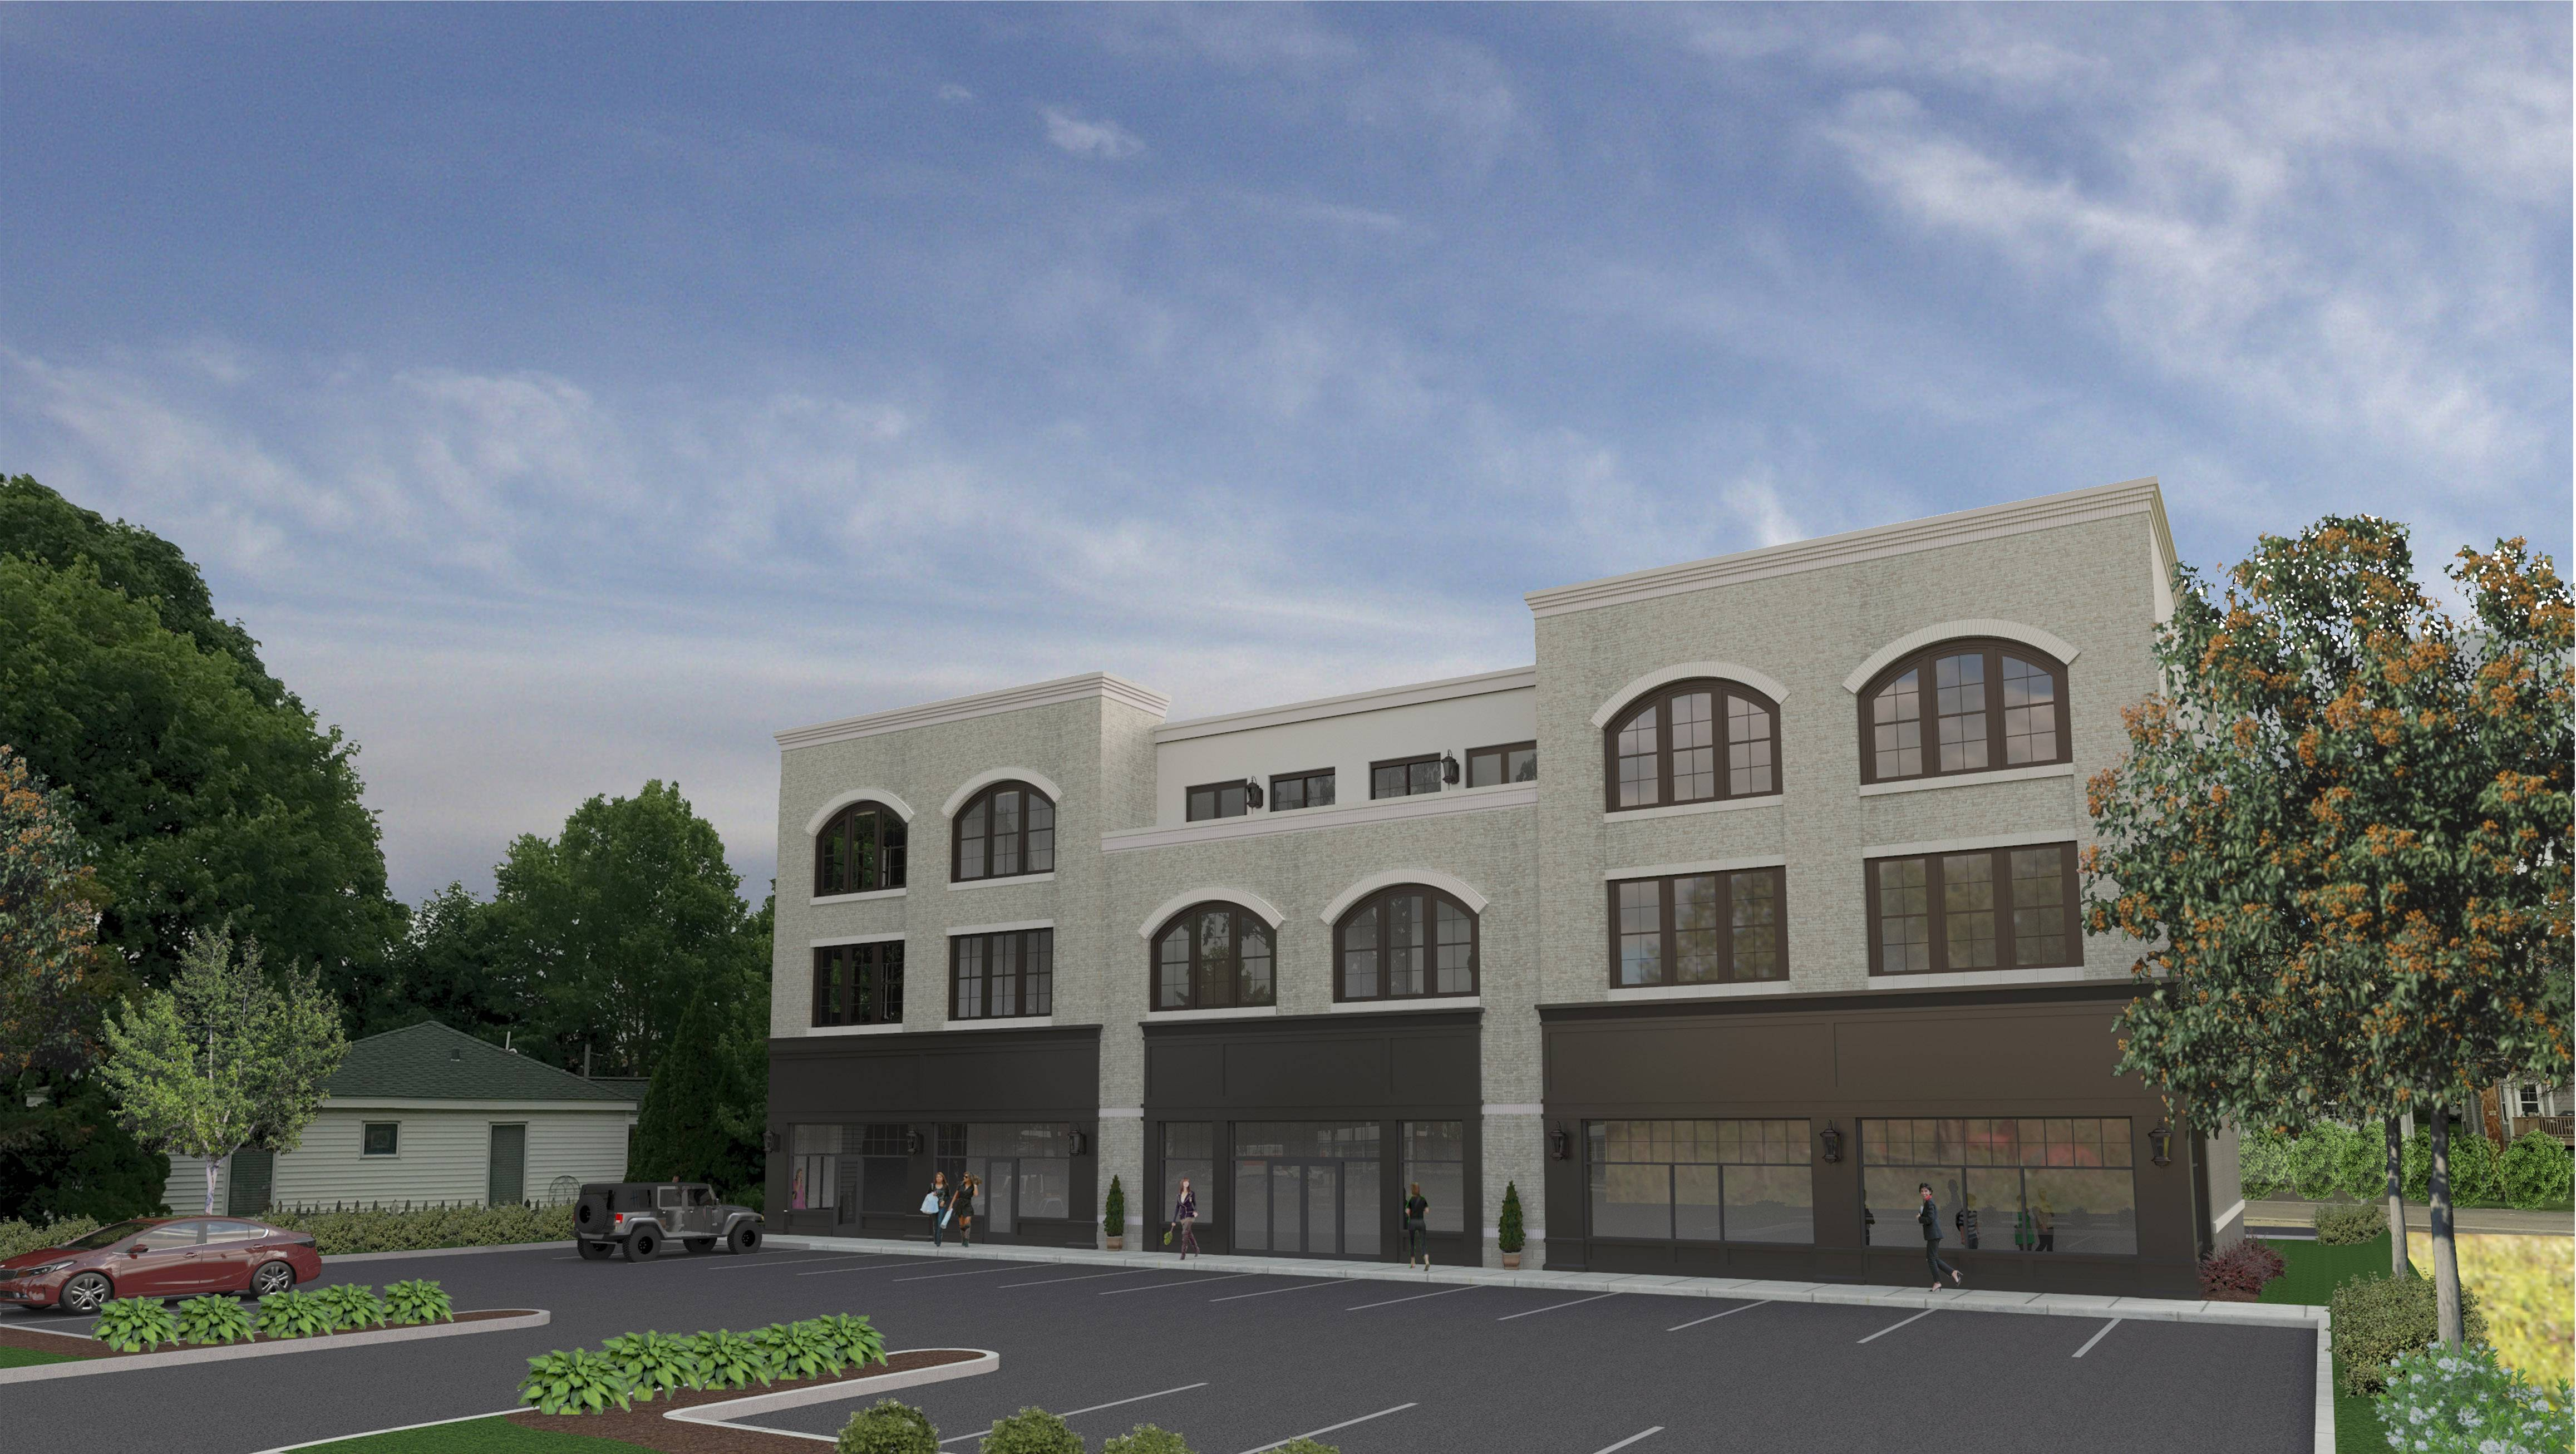 Building to bring new retail, apartments near Naperville train station